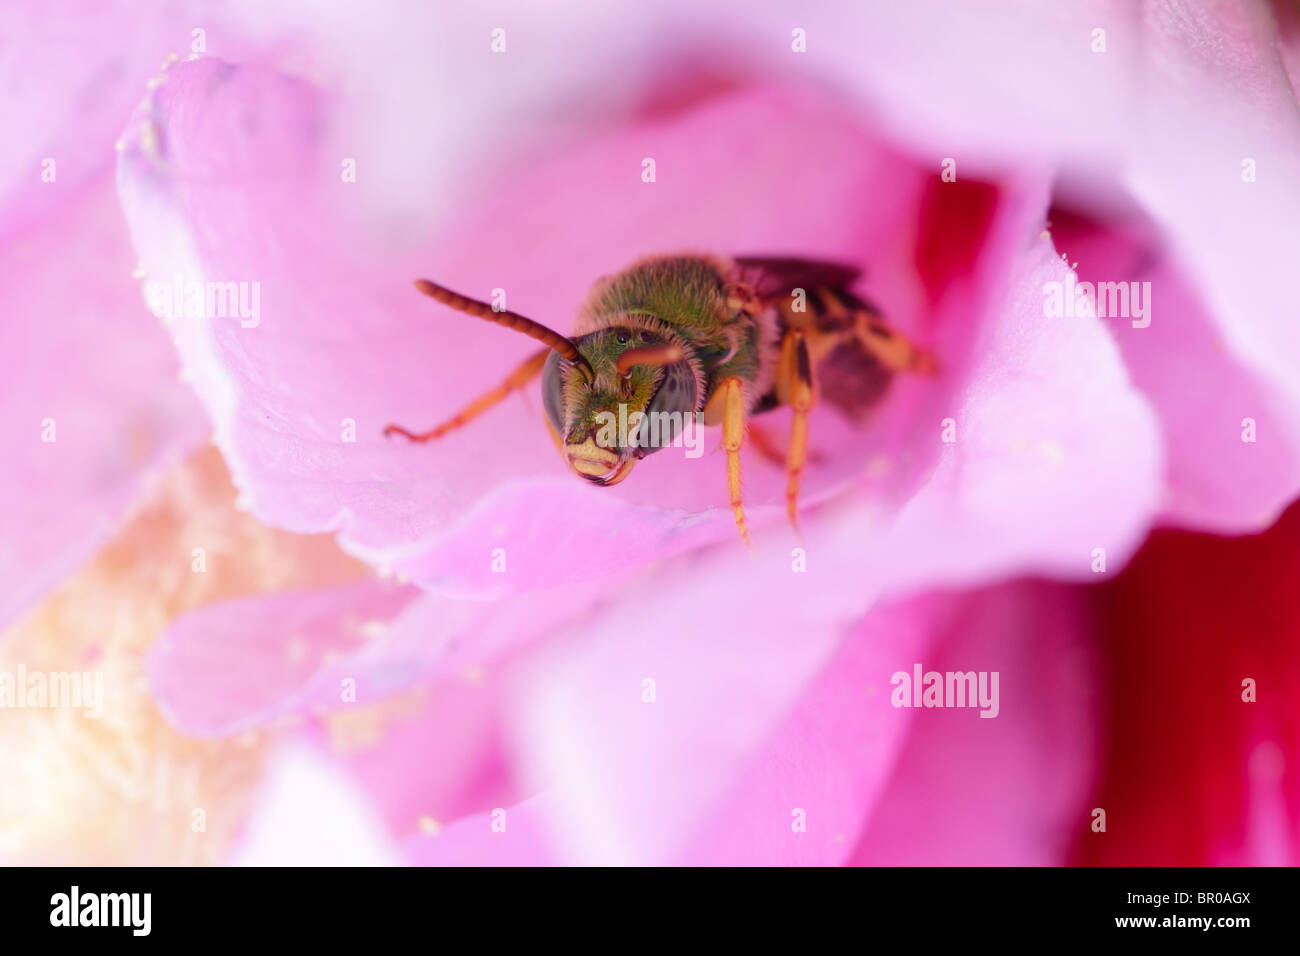 A green metallic bee (Agapostemon) rests inside a hollyhock flower. - Stock Image